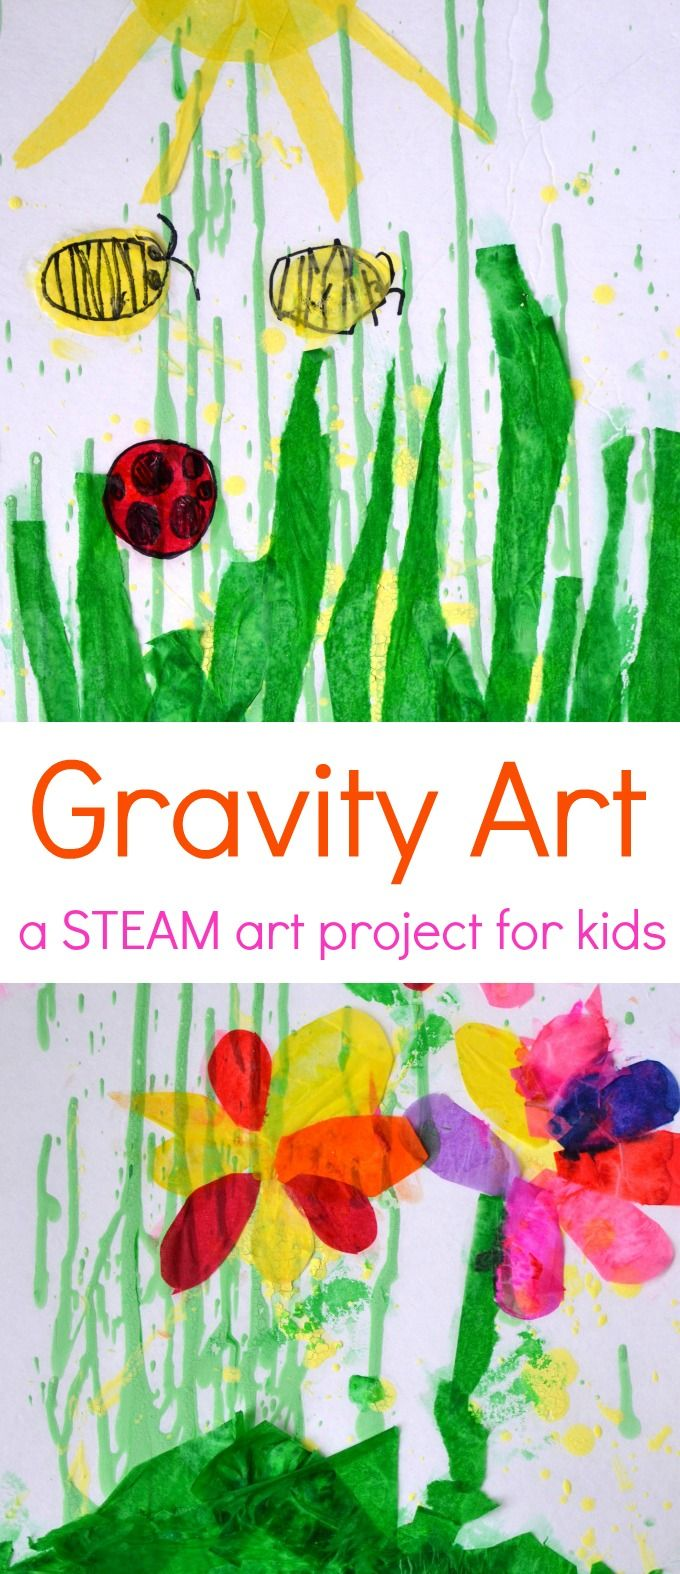 This gravity art activity for kids combines science and art to demonstrate the force of gravity in a STEAM-filled activity that promotes creative thinking.